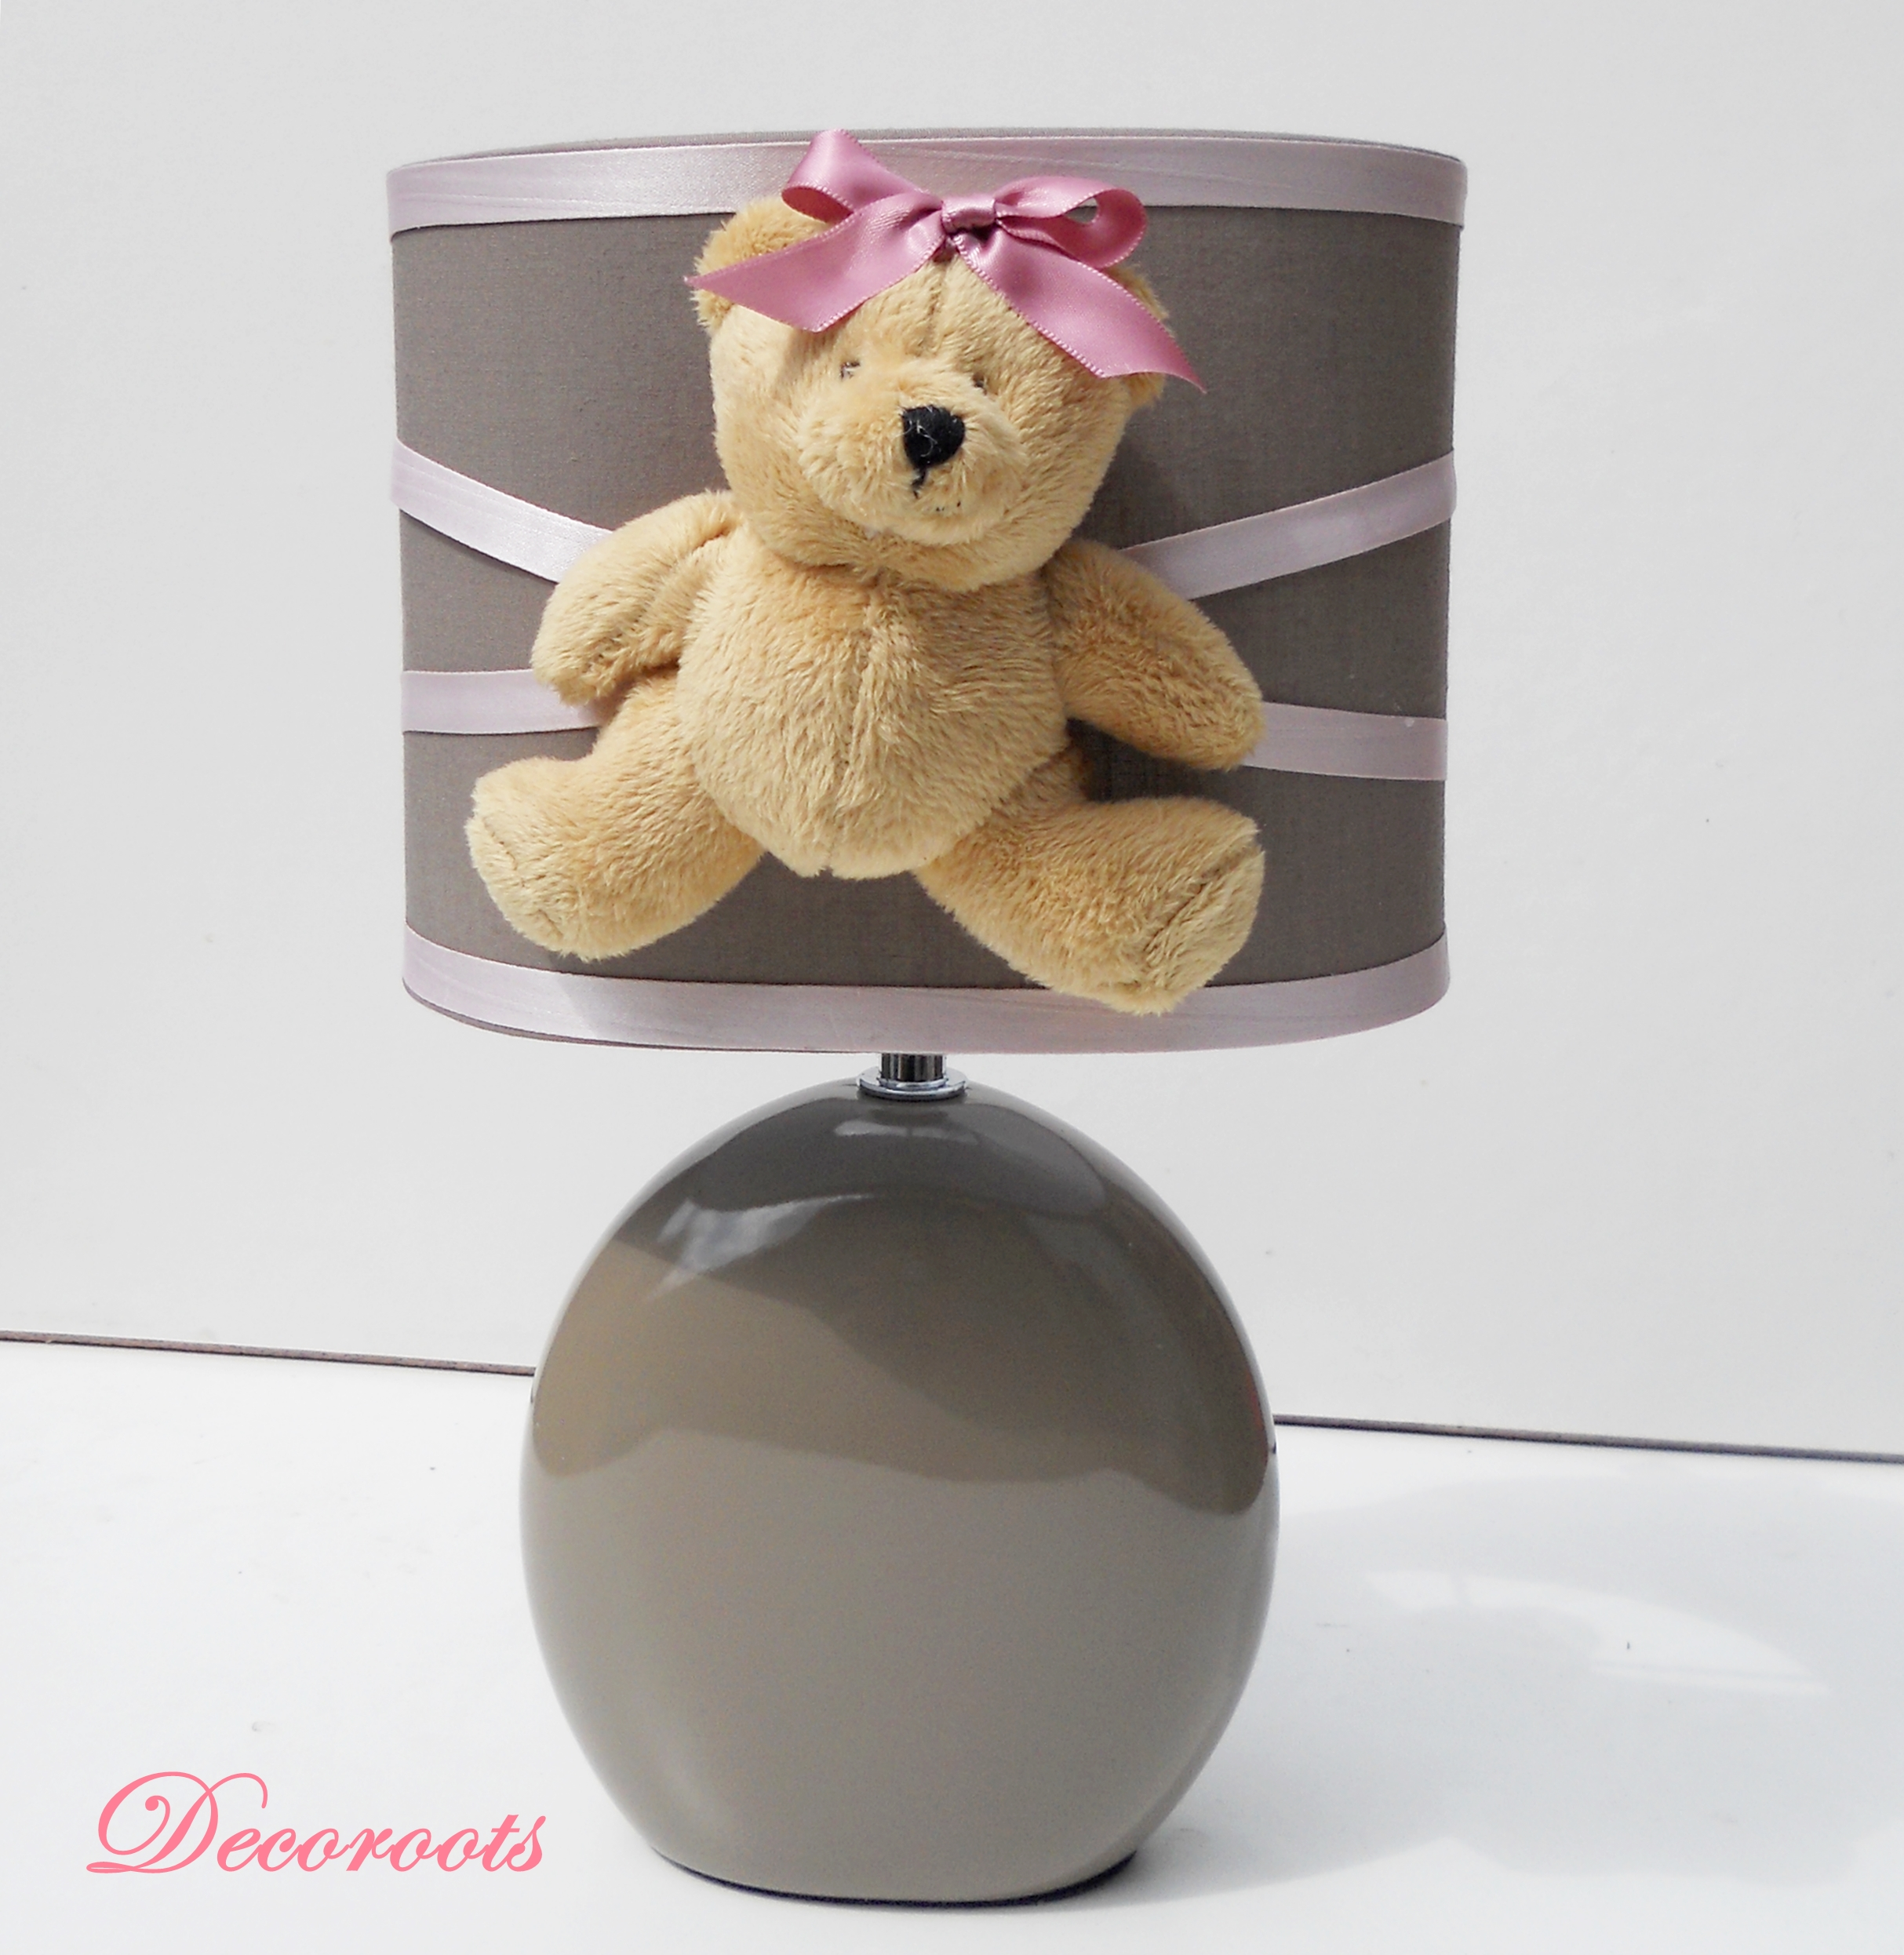 lampe de chevet ours taupe et rose enfant b b luminaire enfant b b decoroots. Black Bedroom Furniture Sets. Home Design Ideas